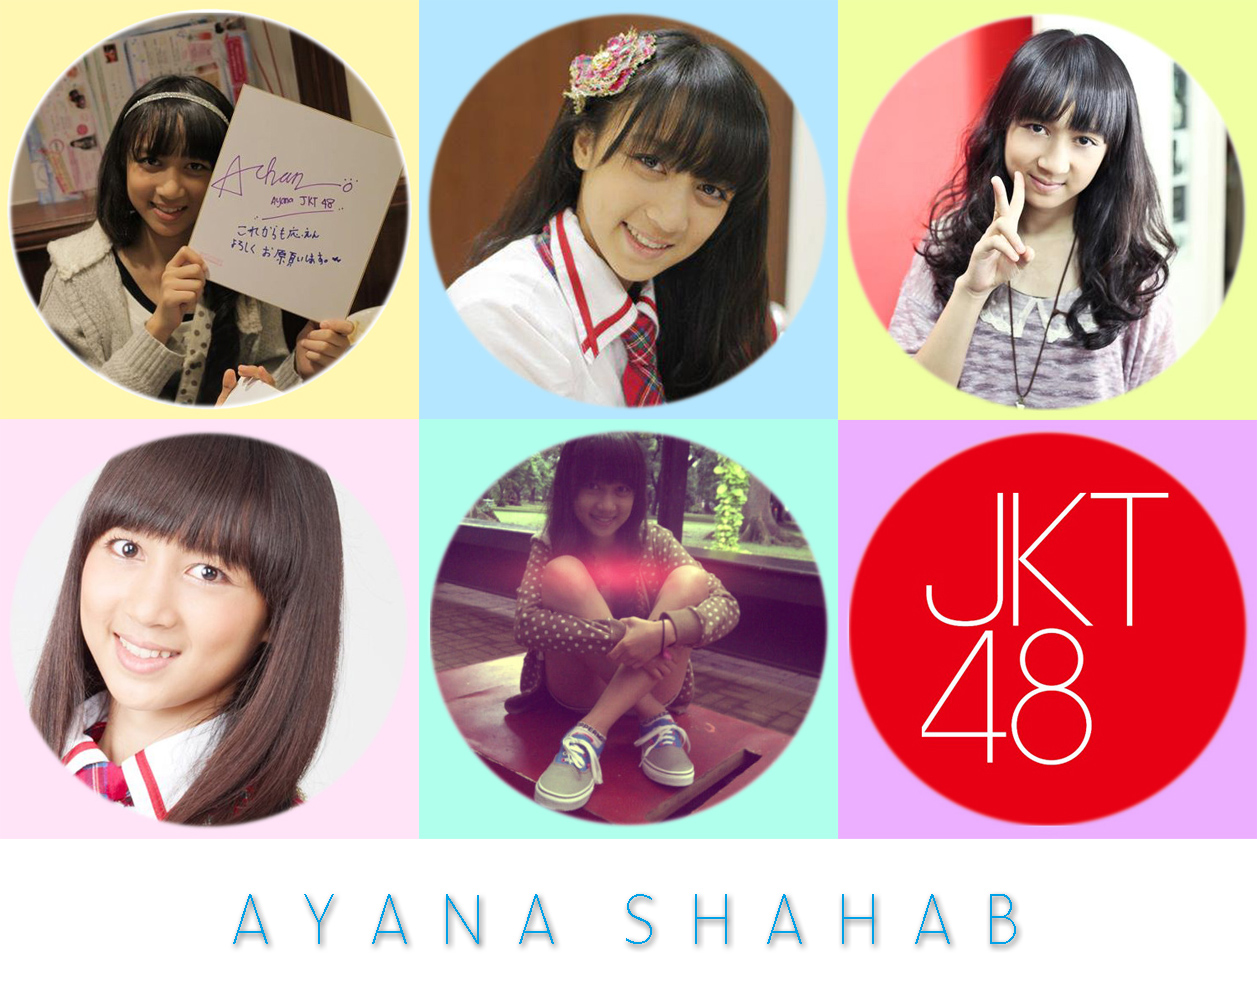 ... achan jkt48 galeri foto jkt48 wallpaper jkt48 jkt48 wallpapers